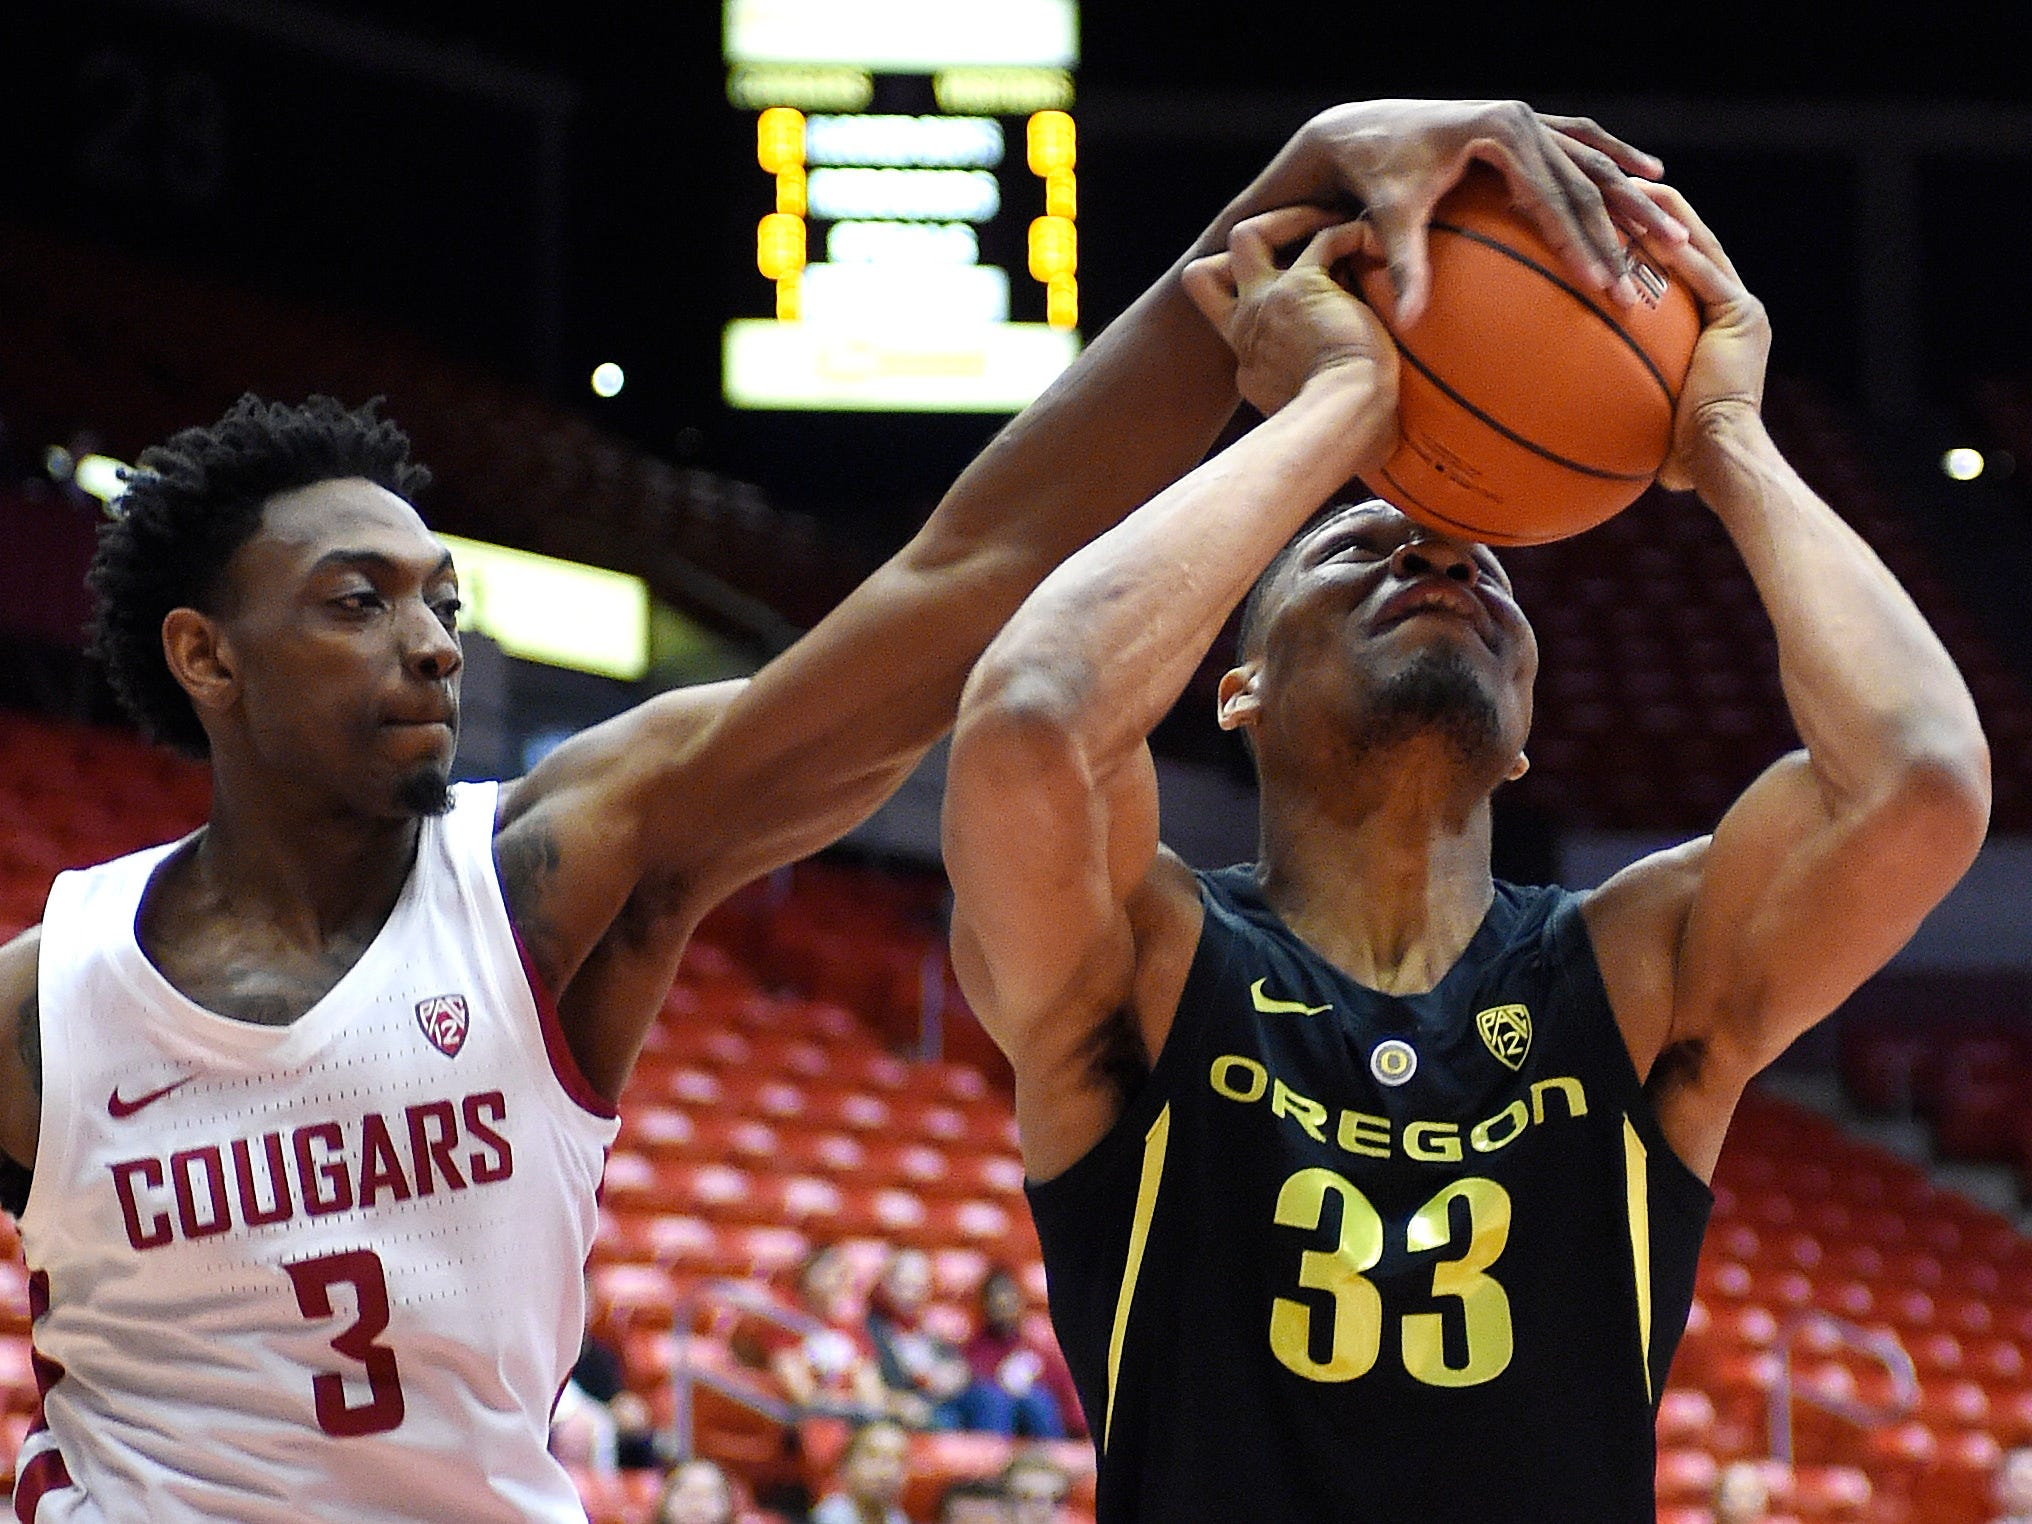 March 6: Oregon forward Francis Okoro has his shot blocked by Washington State's Robert Franks in the first half at Beasley Coliseum.